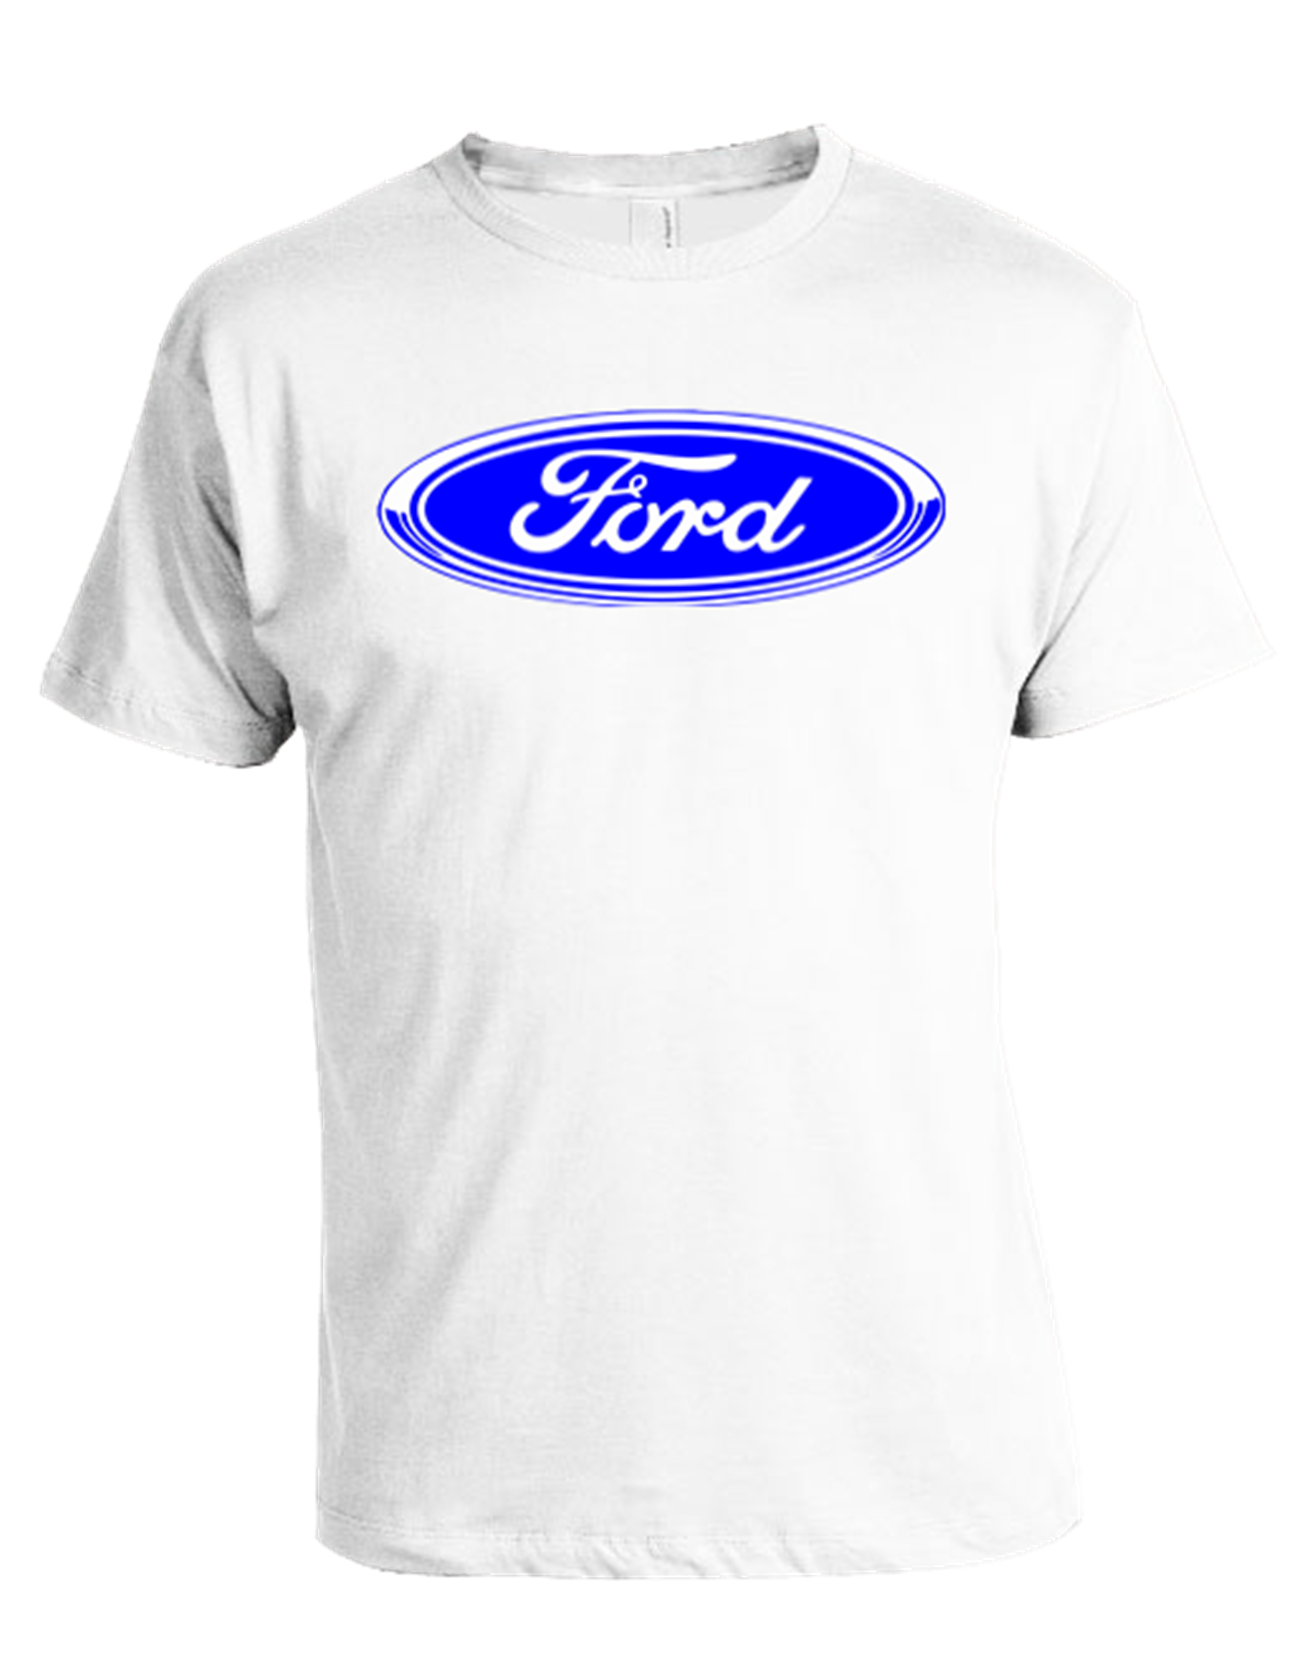 ford logo t shirt. Black Bedroom Furniture Sets. Home Design Ideas